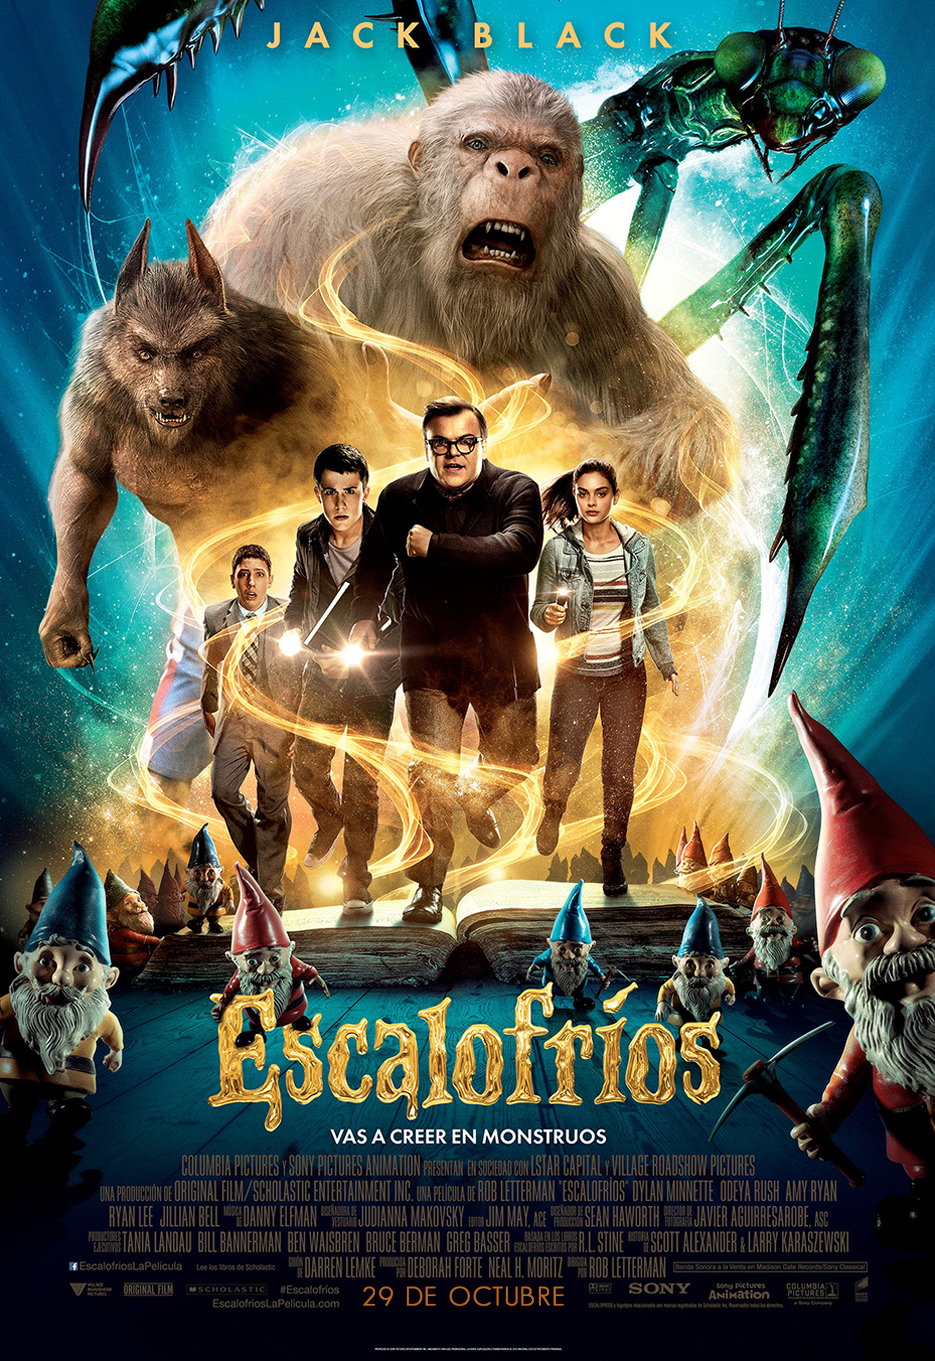 https://www.andesfilms.com.pe/escalofrios-1510/